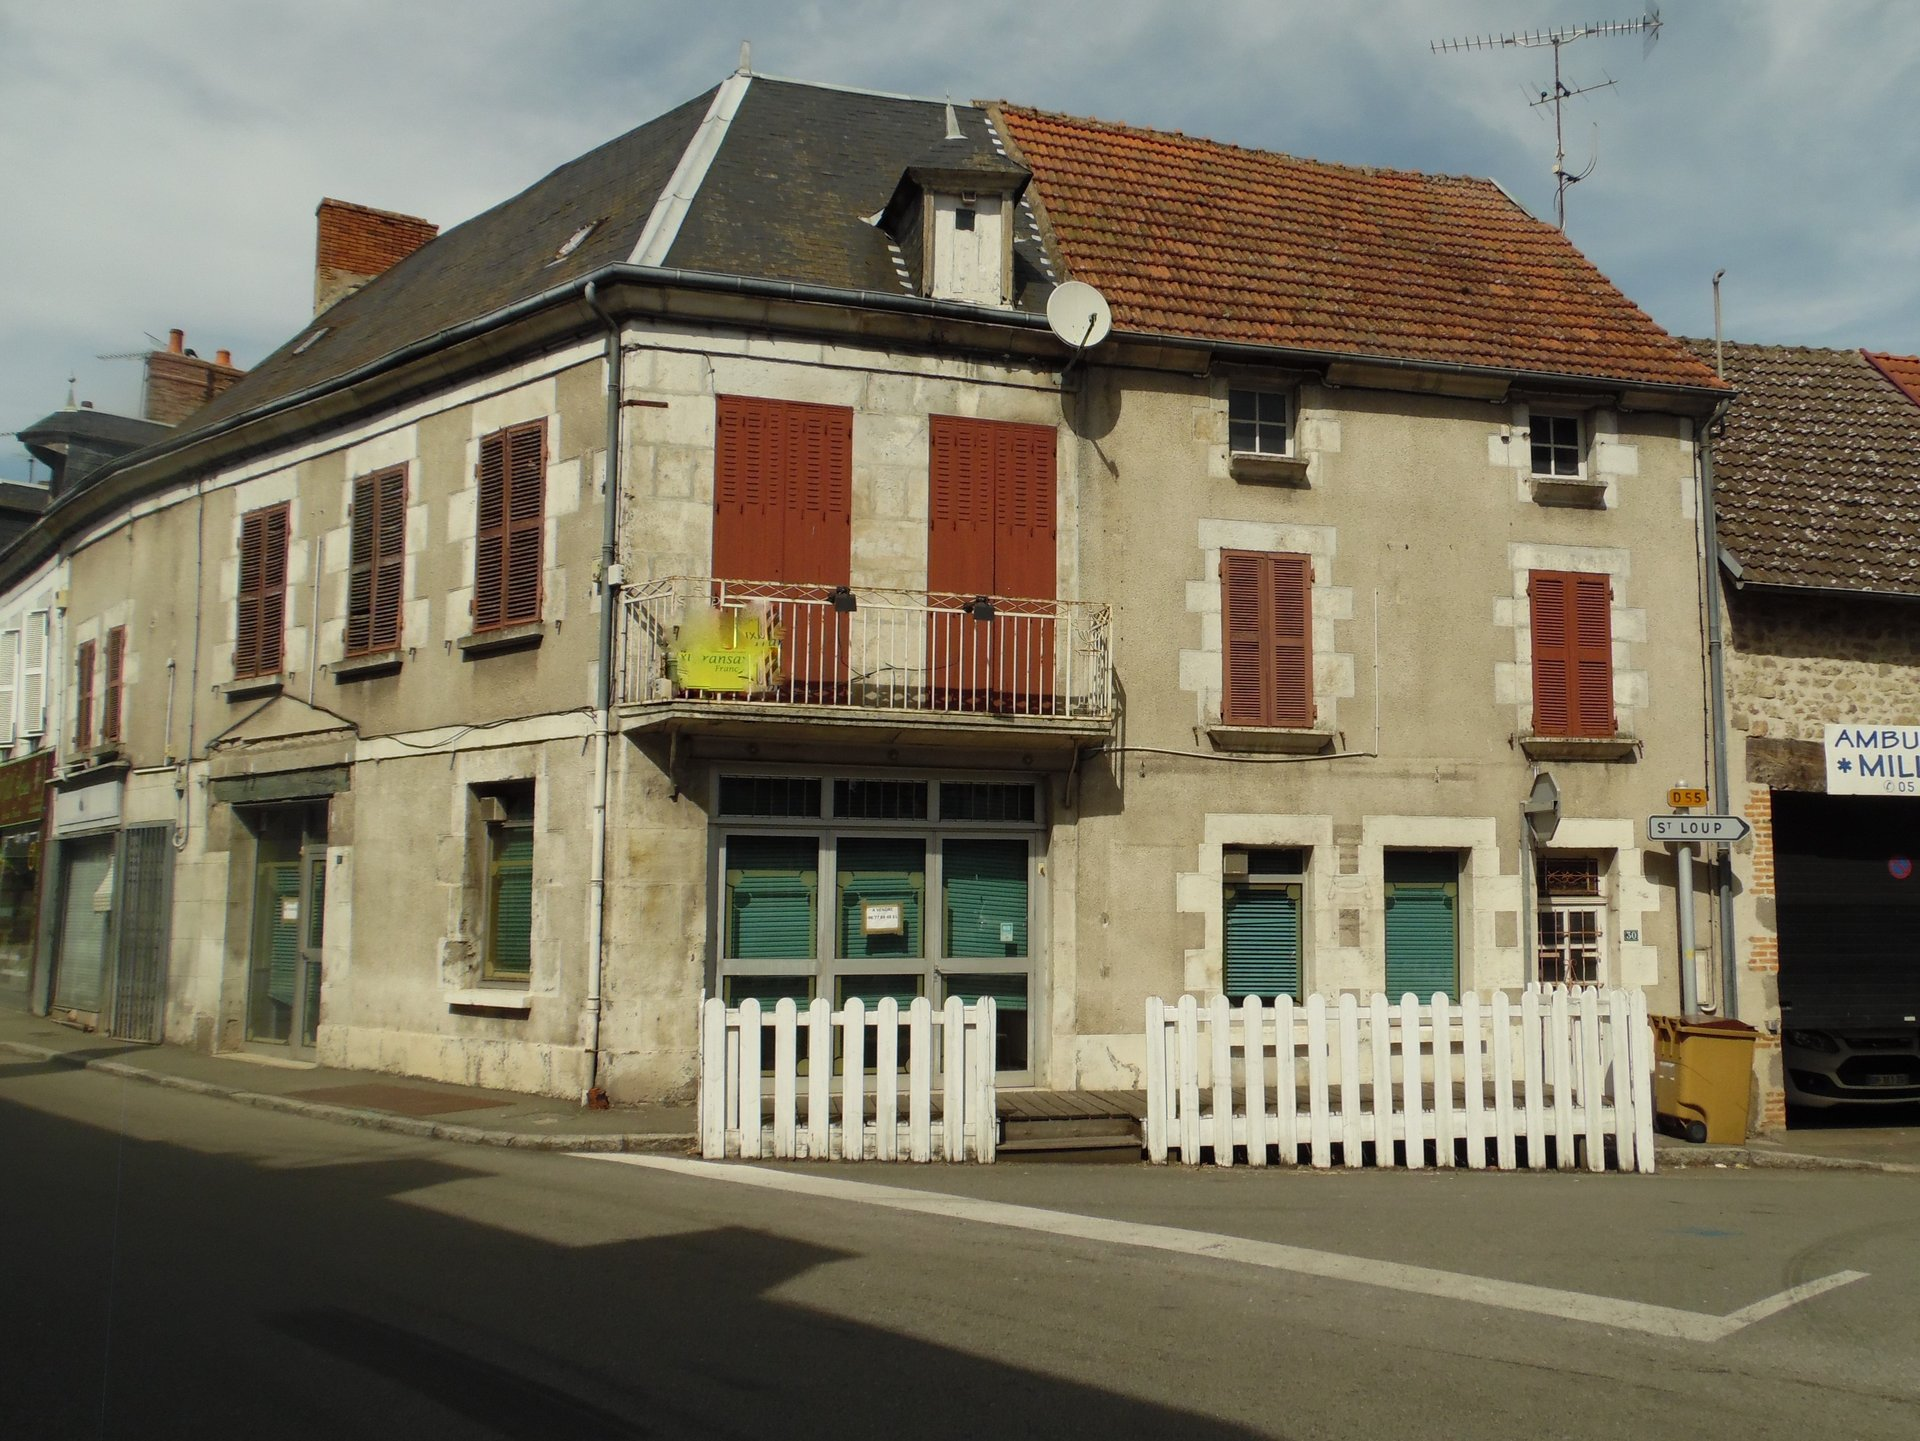 For sale house and store in Chenerailles (Creuse)